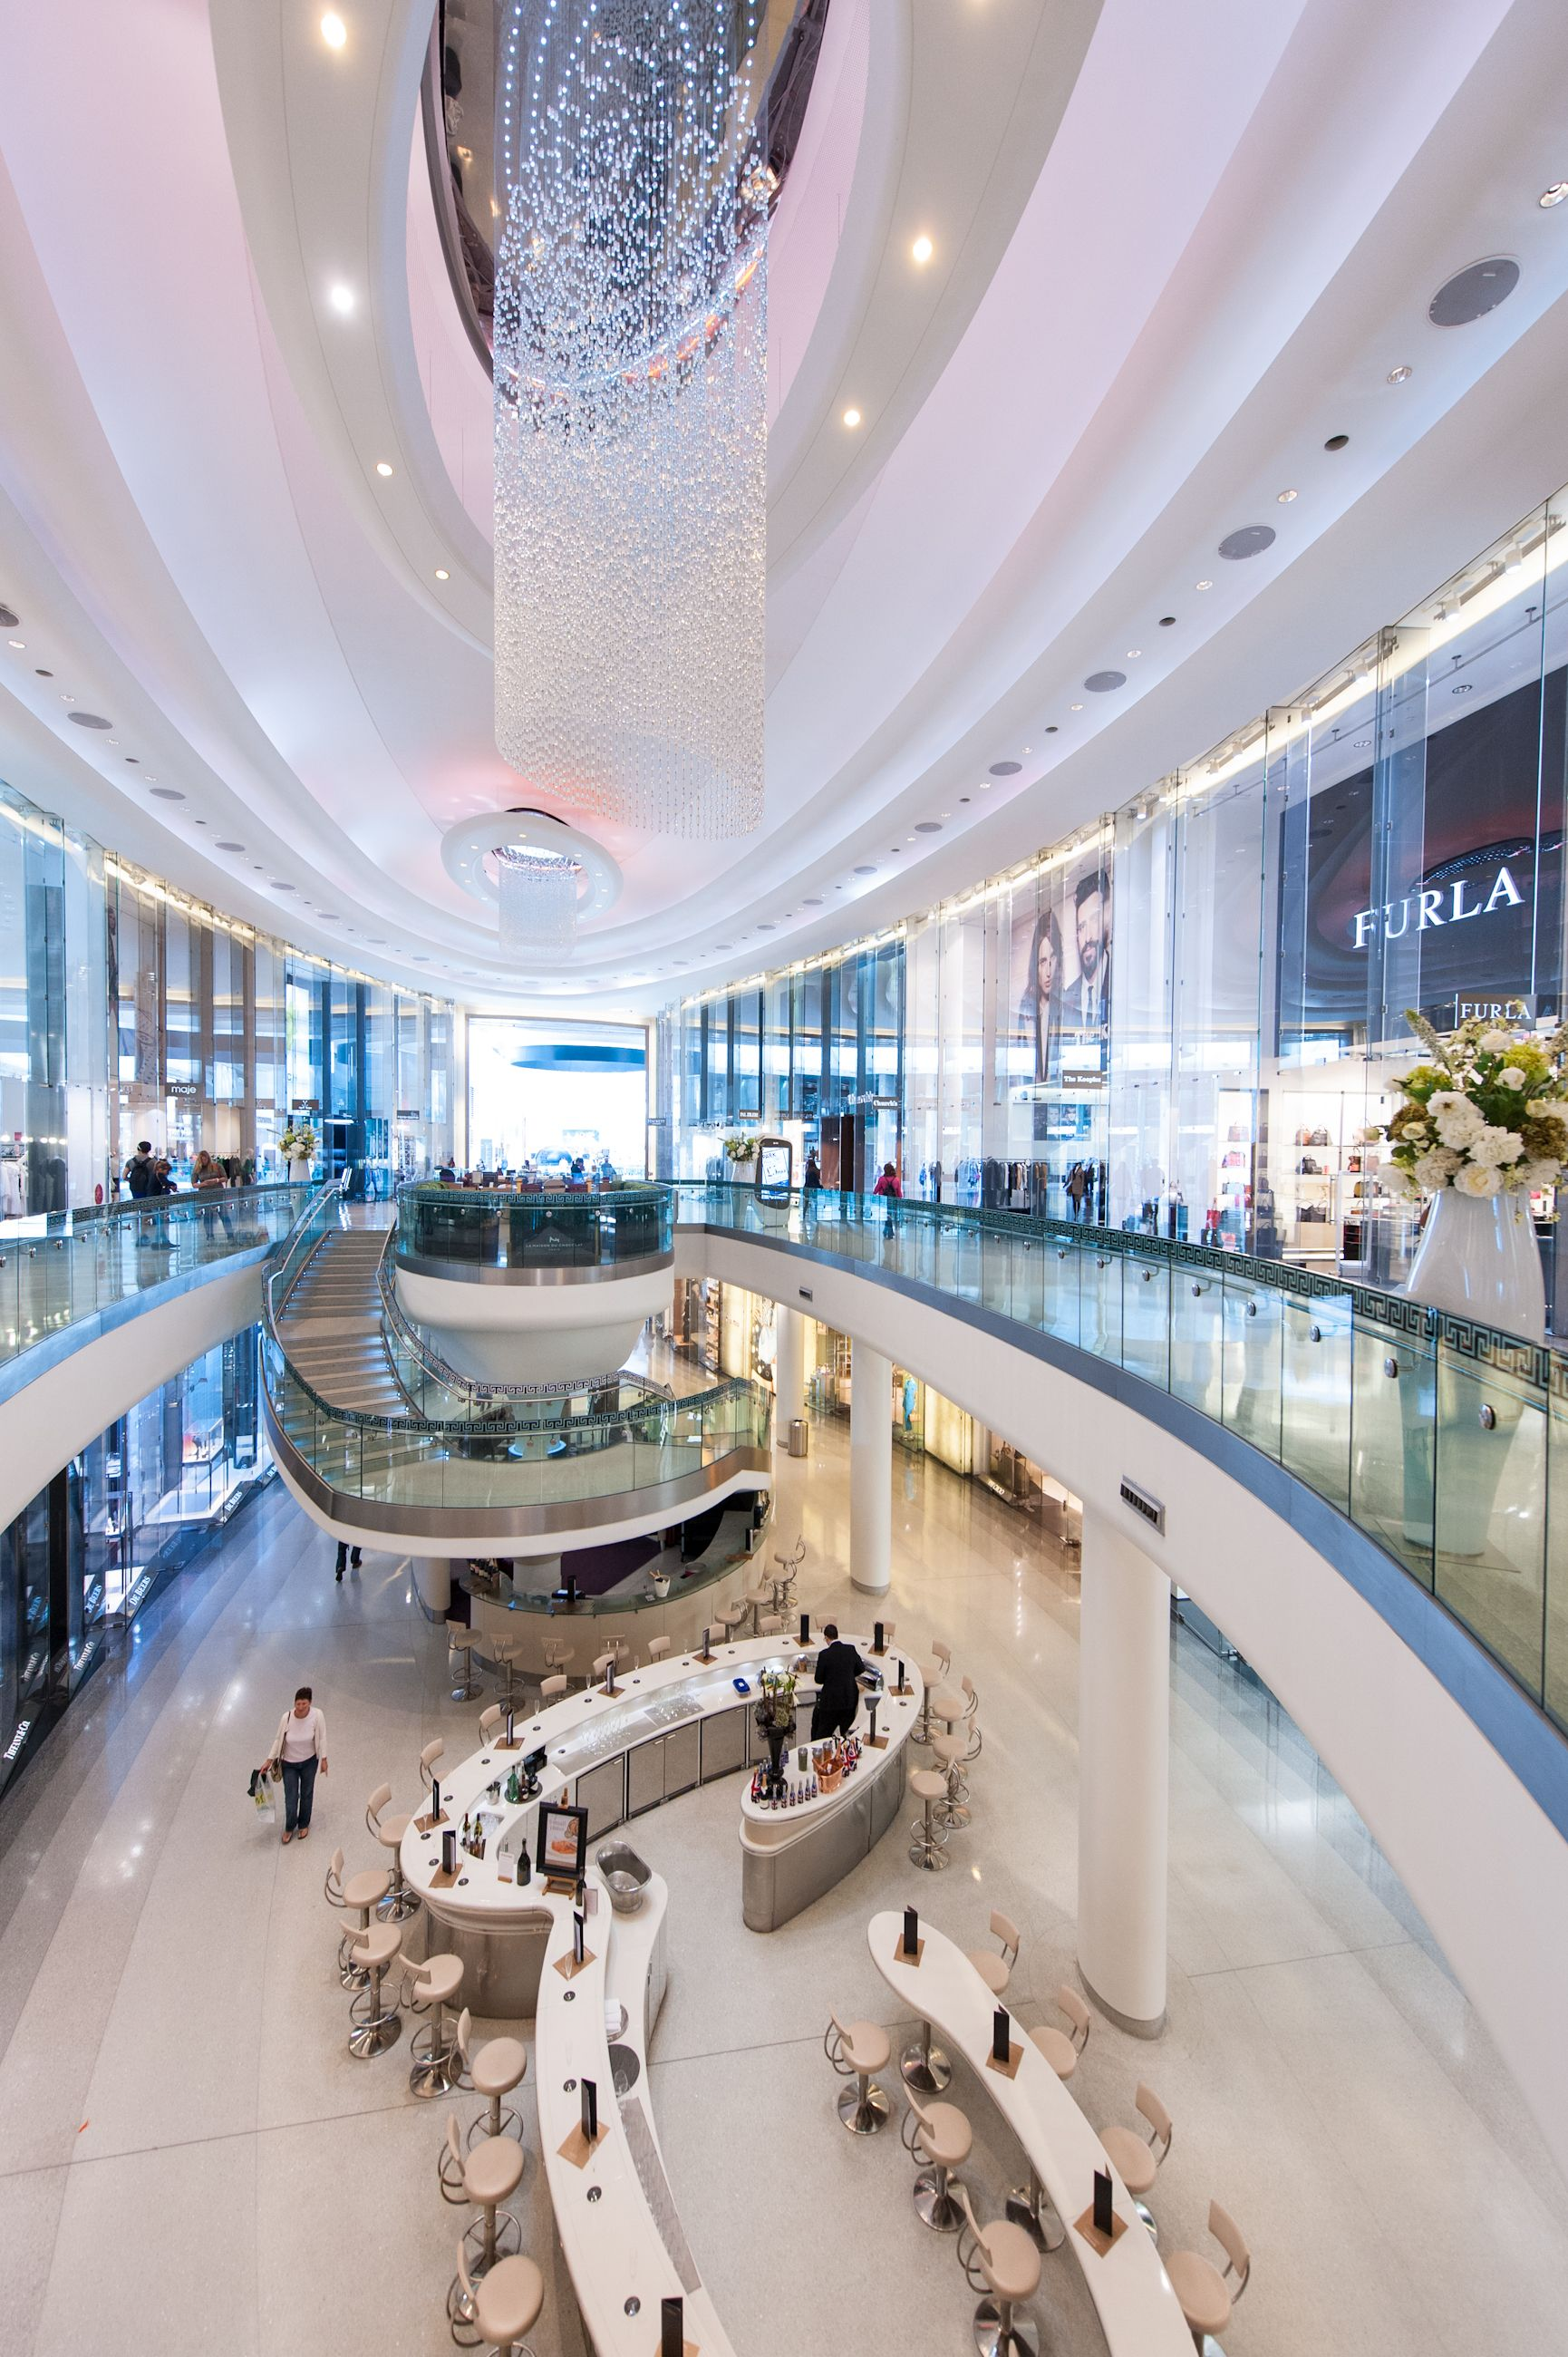 Westfield Newborn Photographer: The Ever So Fabulous And Chic Look That Westfield's London